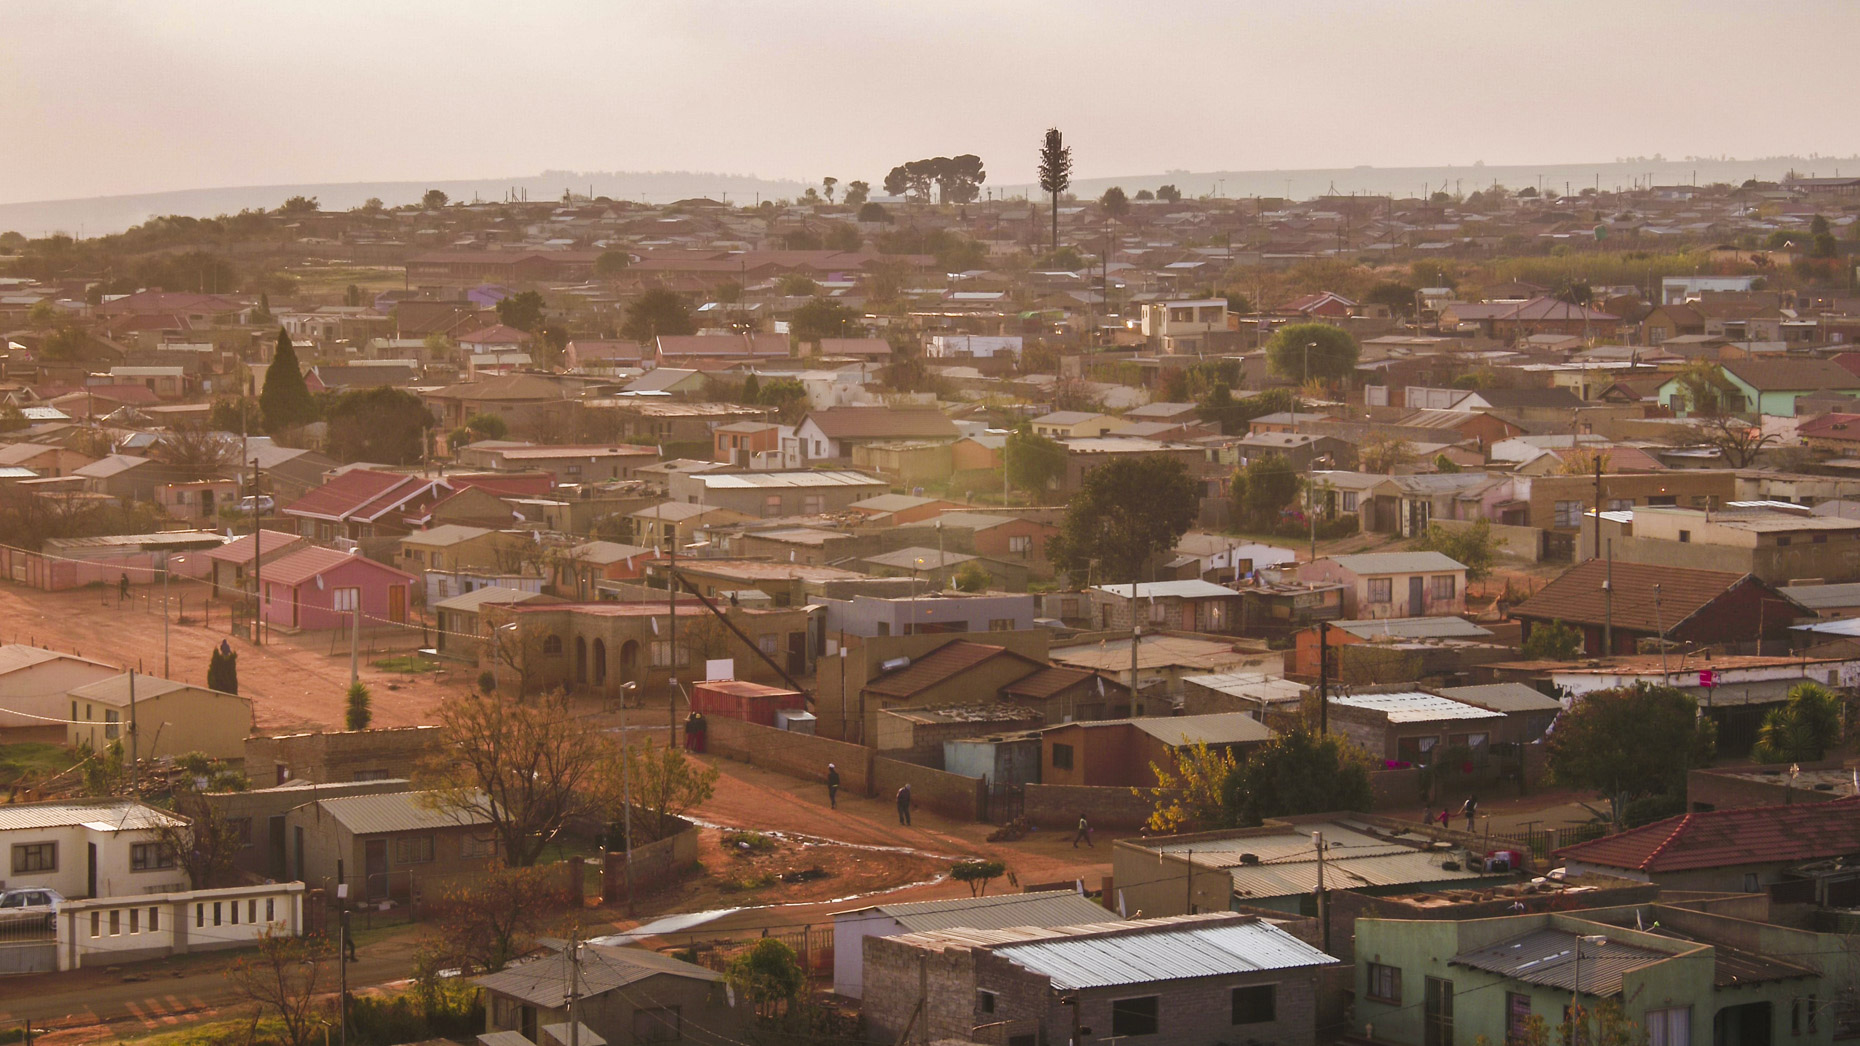 An aerial view of a township in Johanesburg, South Africa